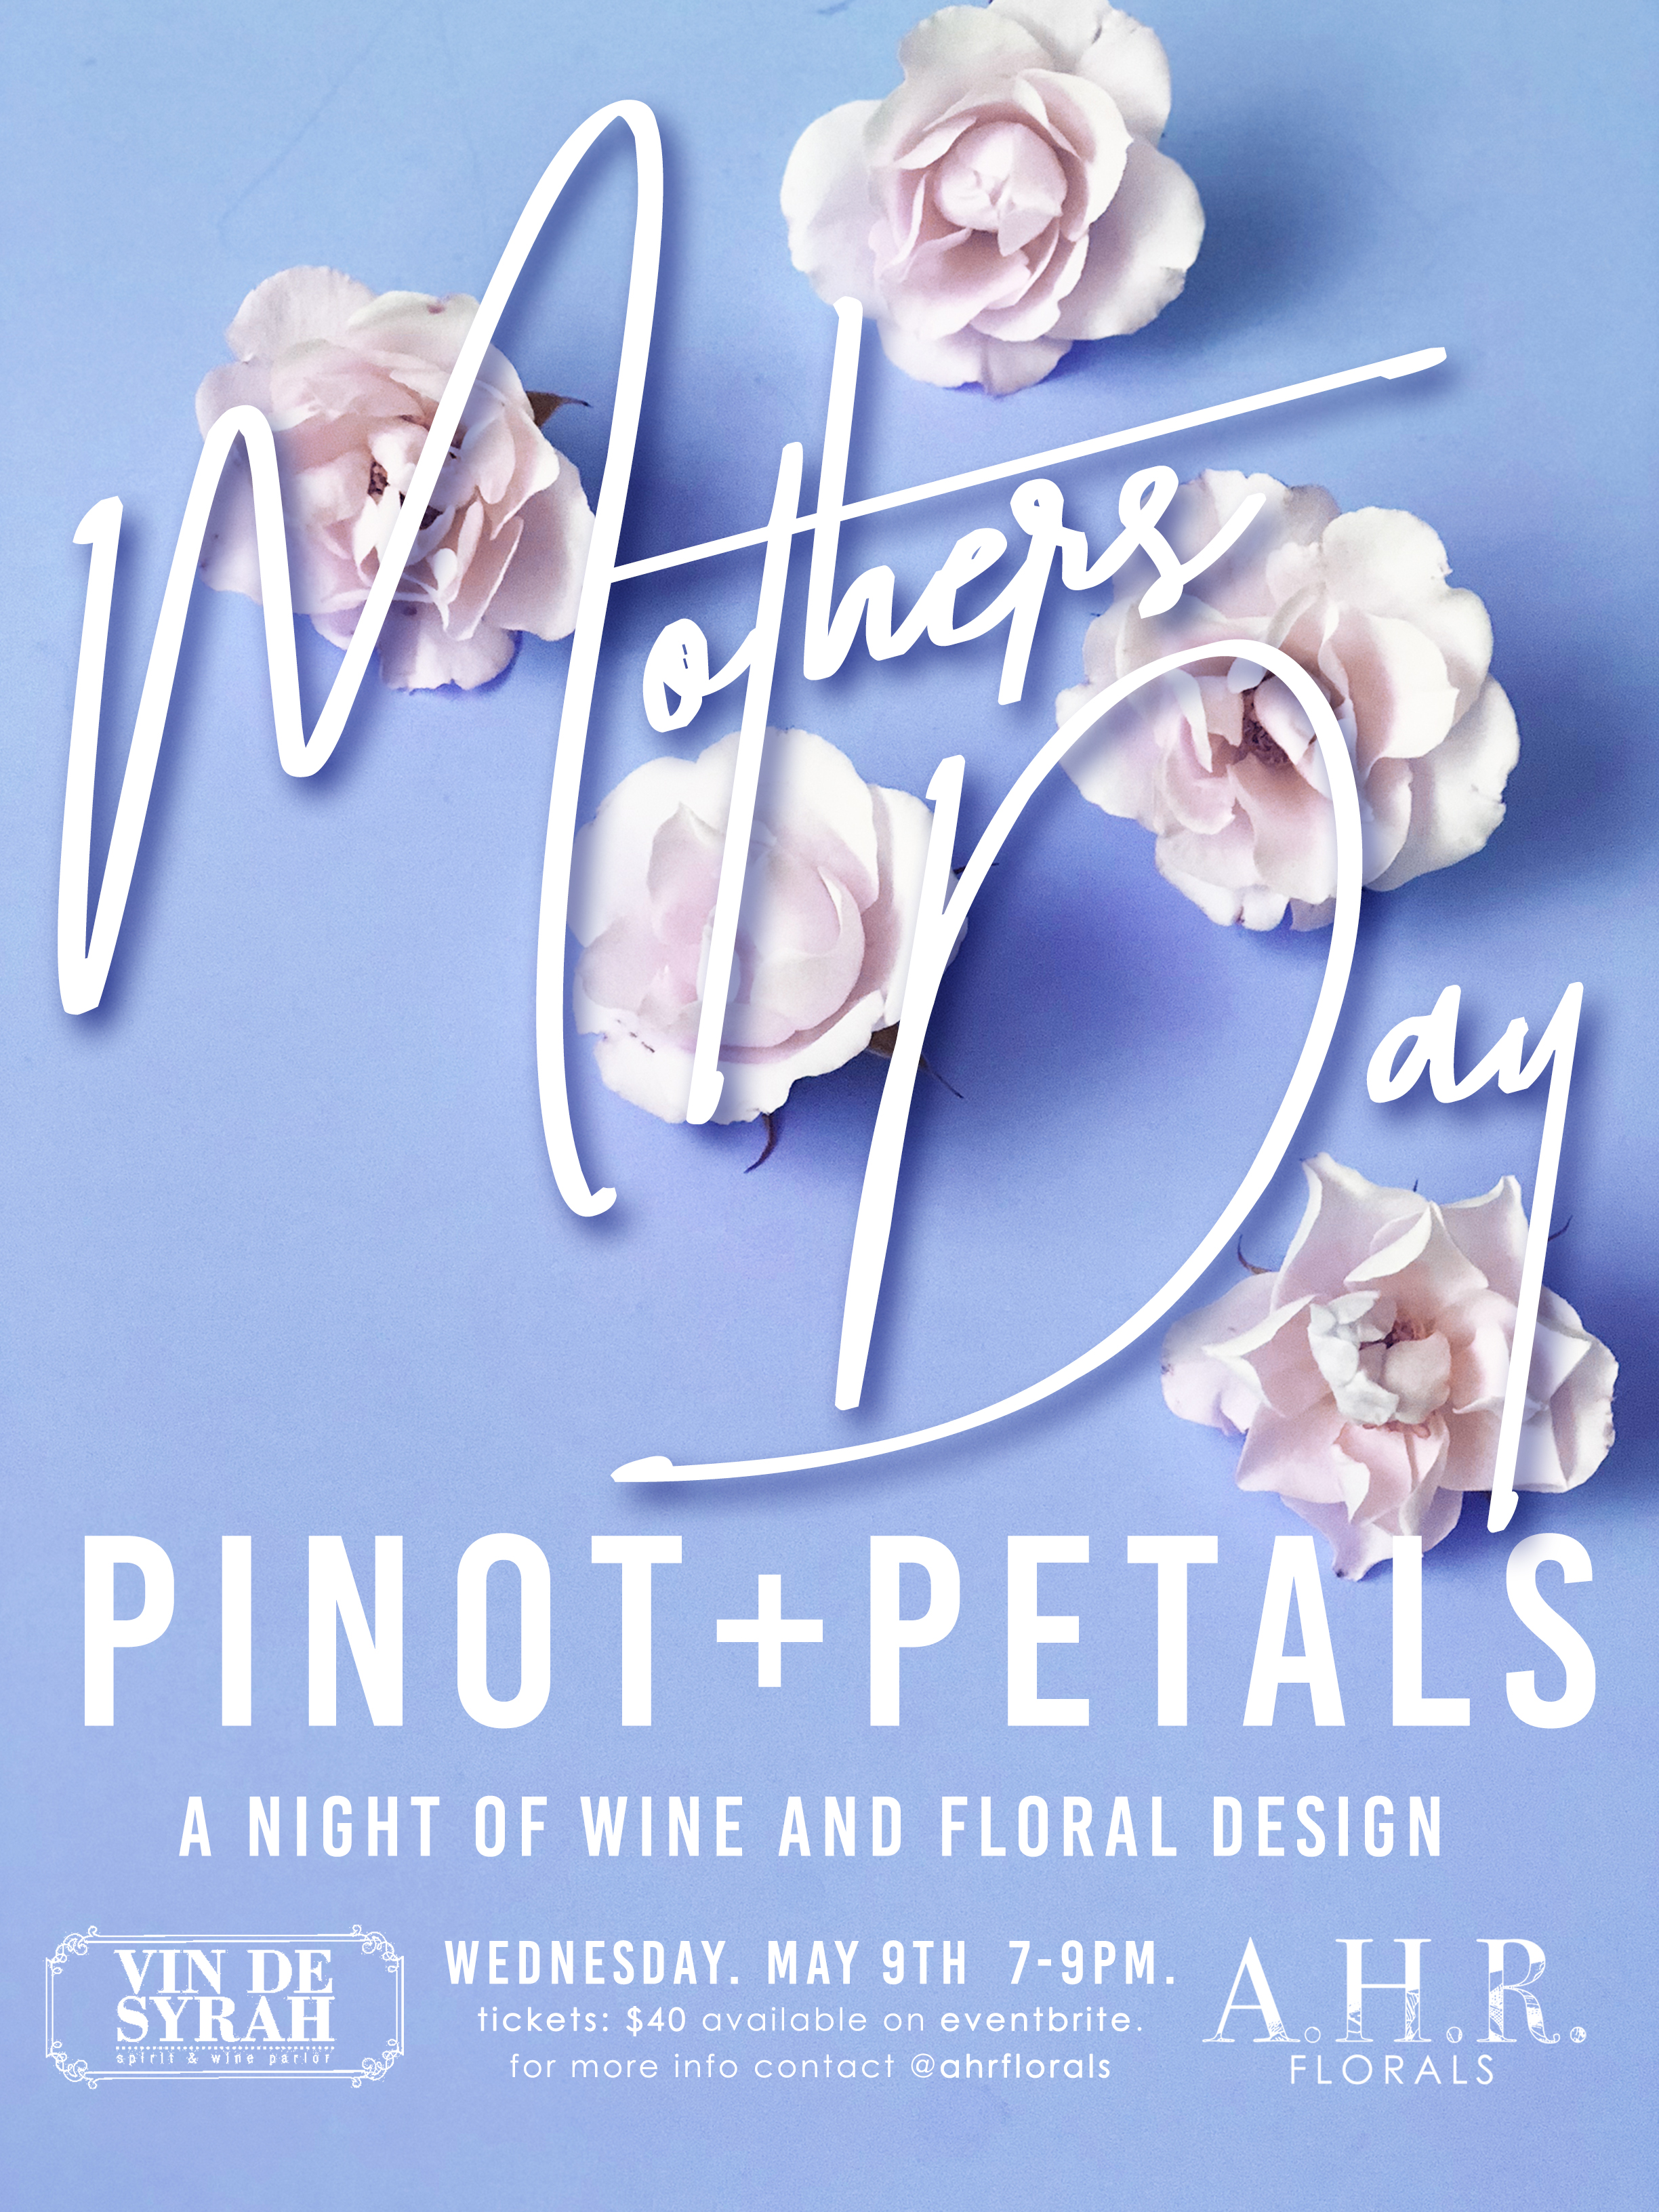 ahr-florals-pinot-and-petals-wine-and-floral-design-may.jpg